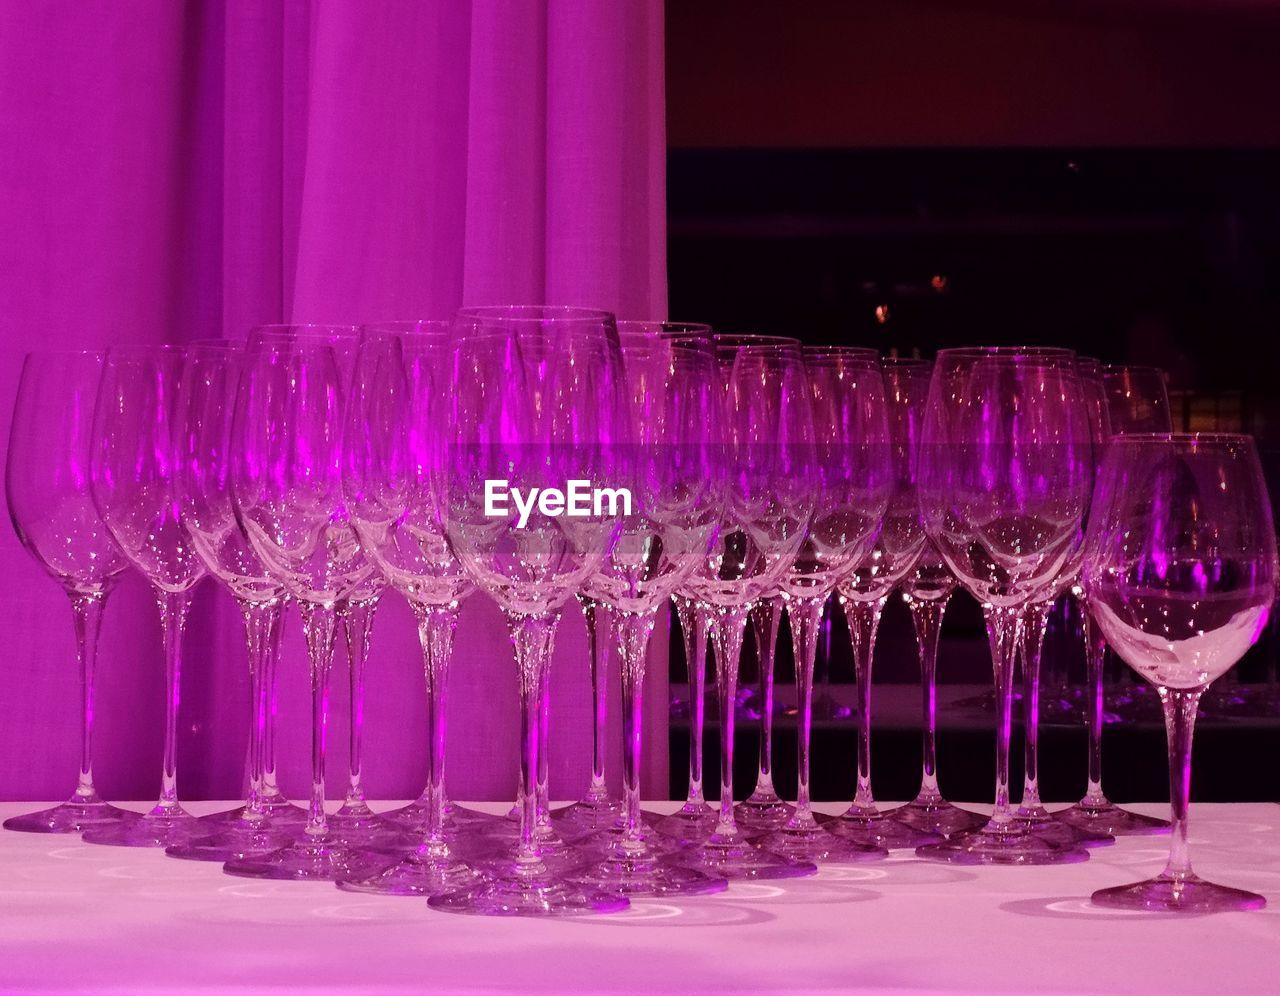 glass, pink color, purple, food and drink, refreshment, drink, no people, indoors, glass - material, table, alcohol, still life, household equipment, drinking glass, close-up, illuminated, night, bottle, transparent, nightlife, bar counter